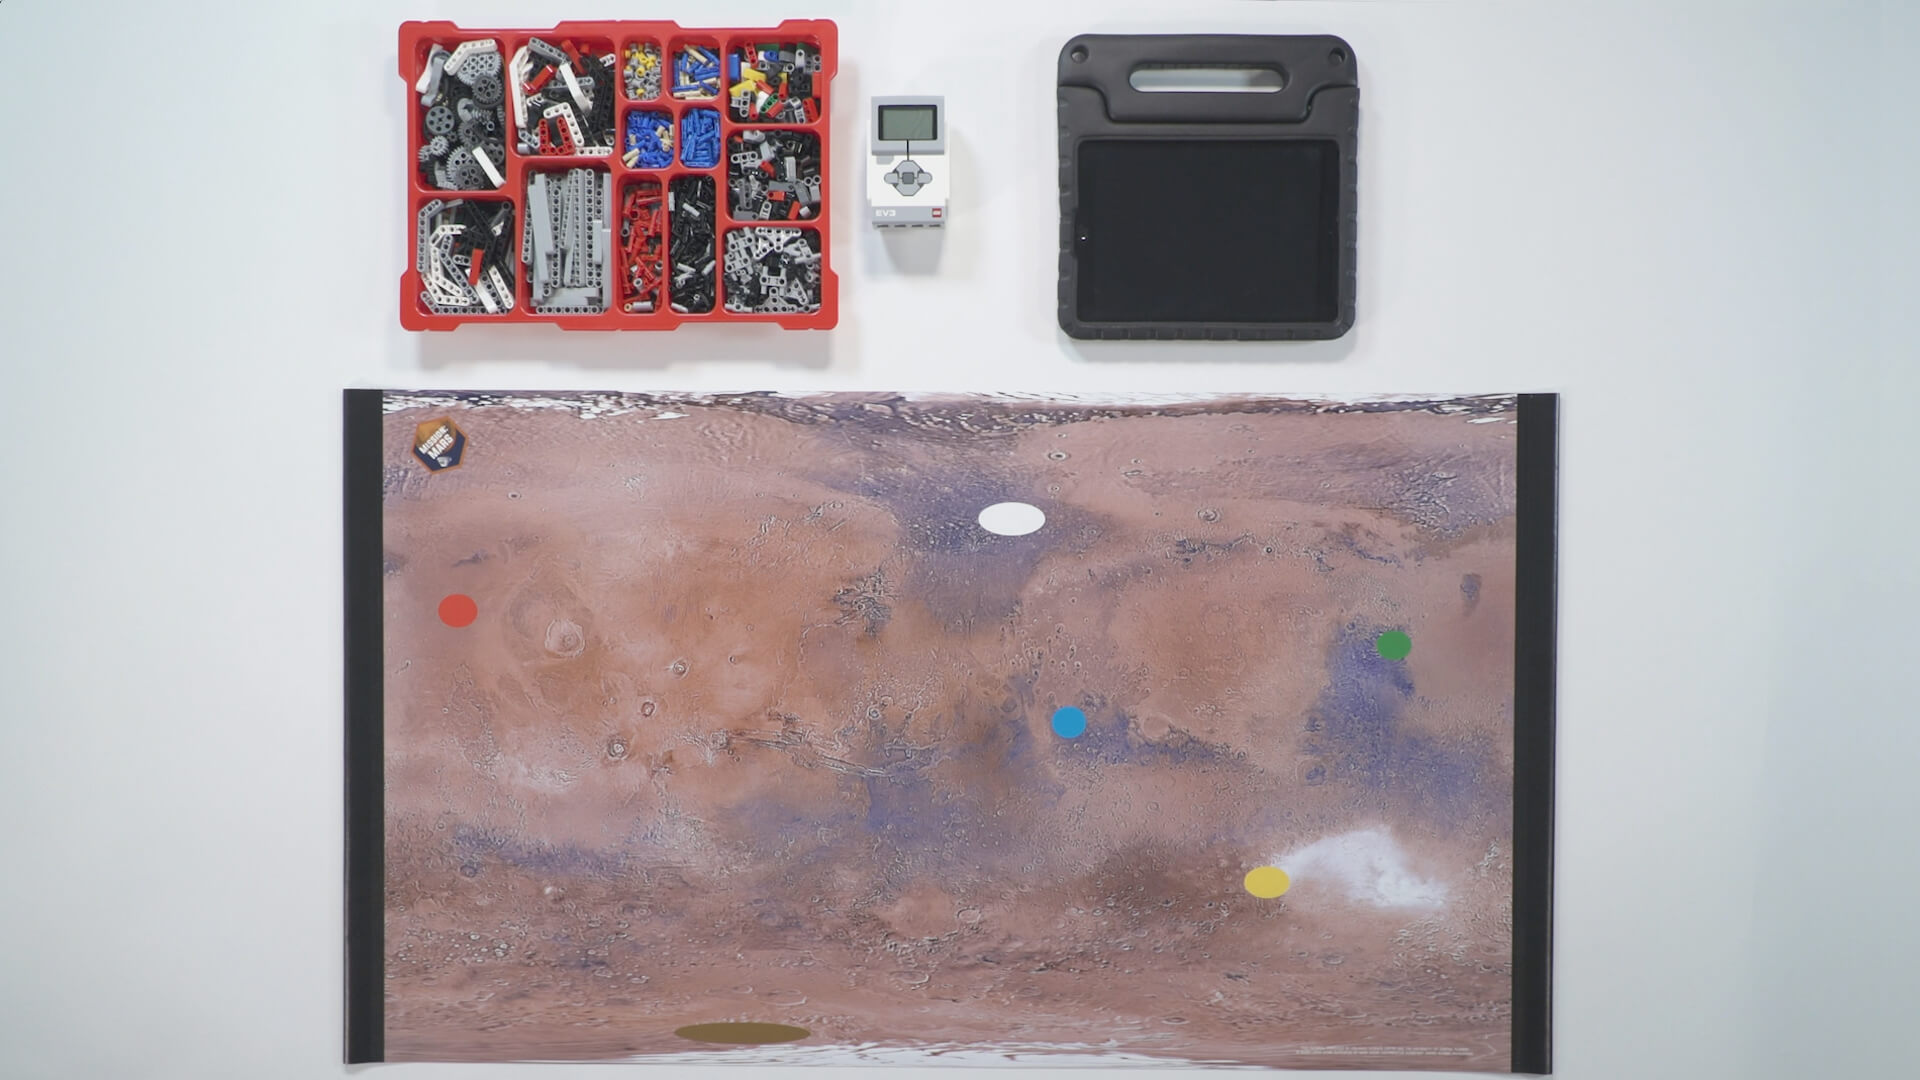 Mission: Mars Surveying the Land activity mat with bin of Lego parts within a video presentation.